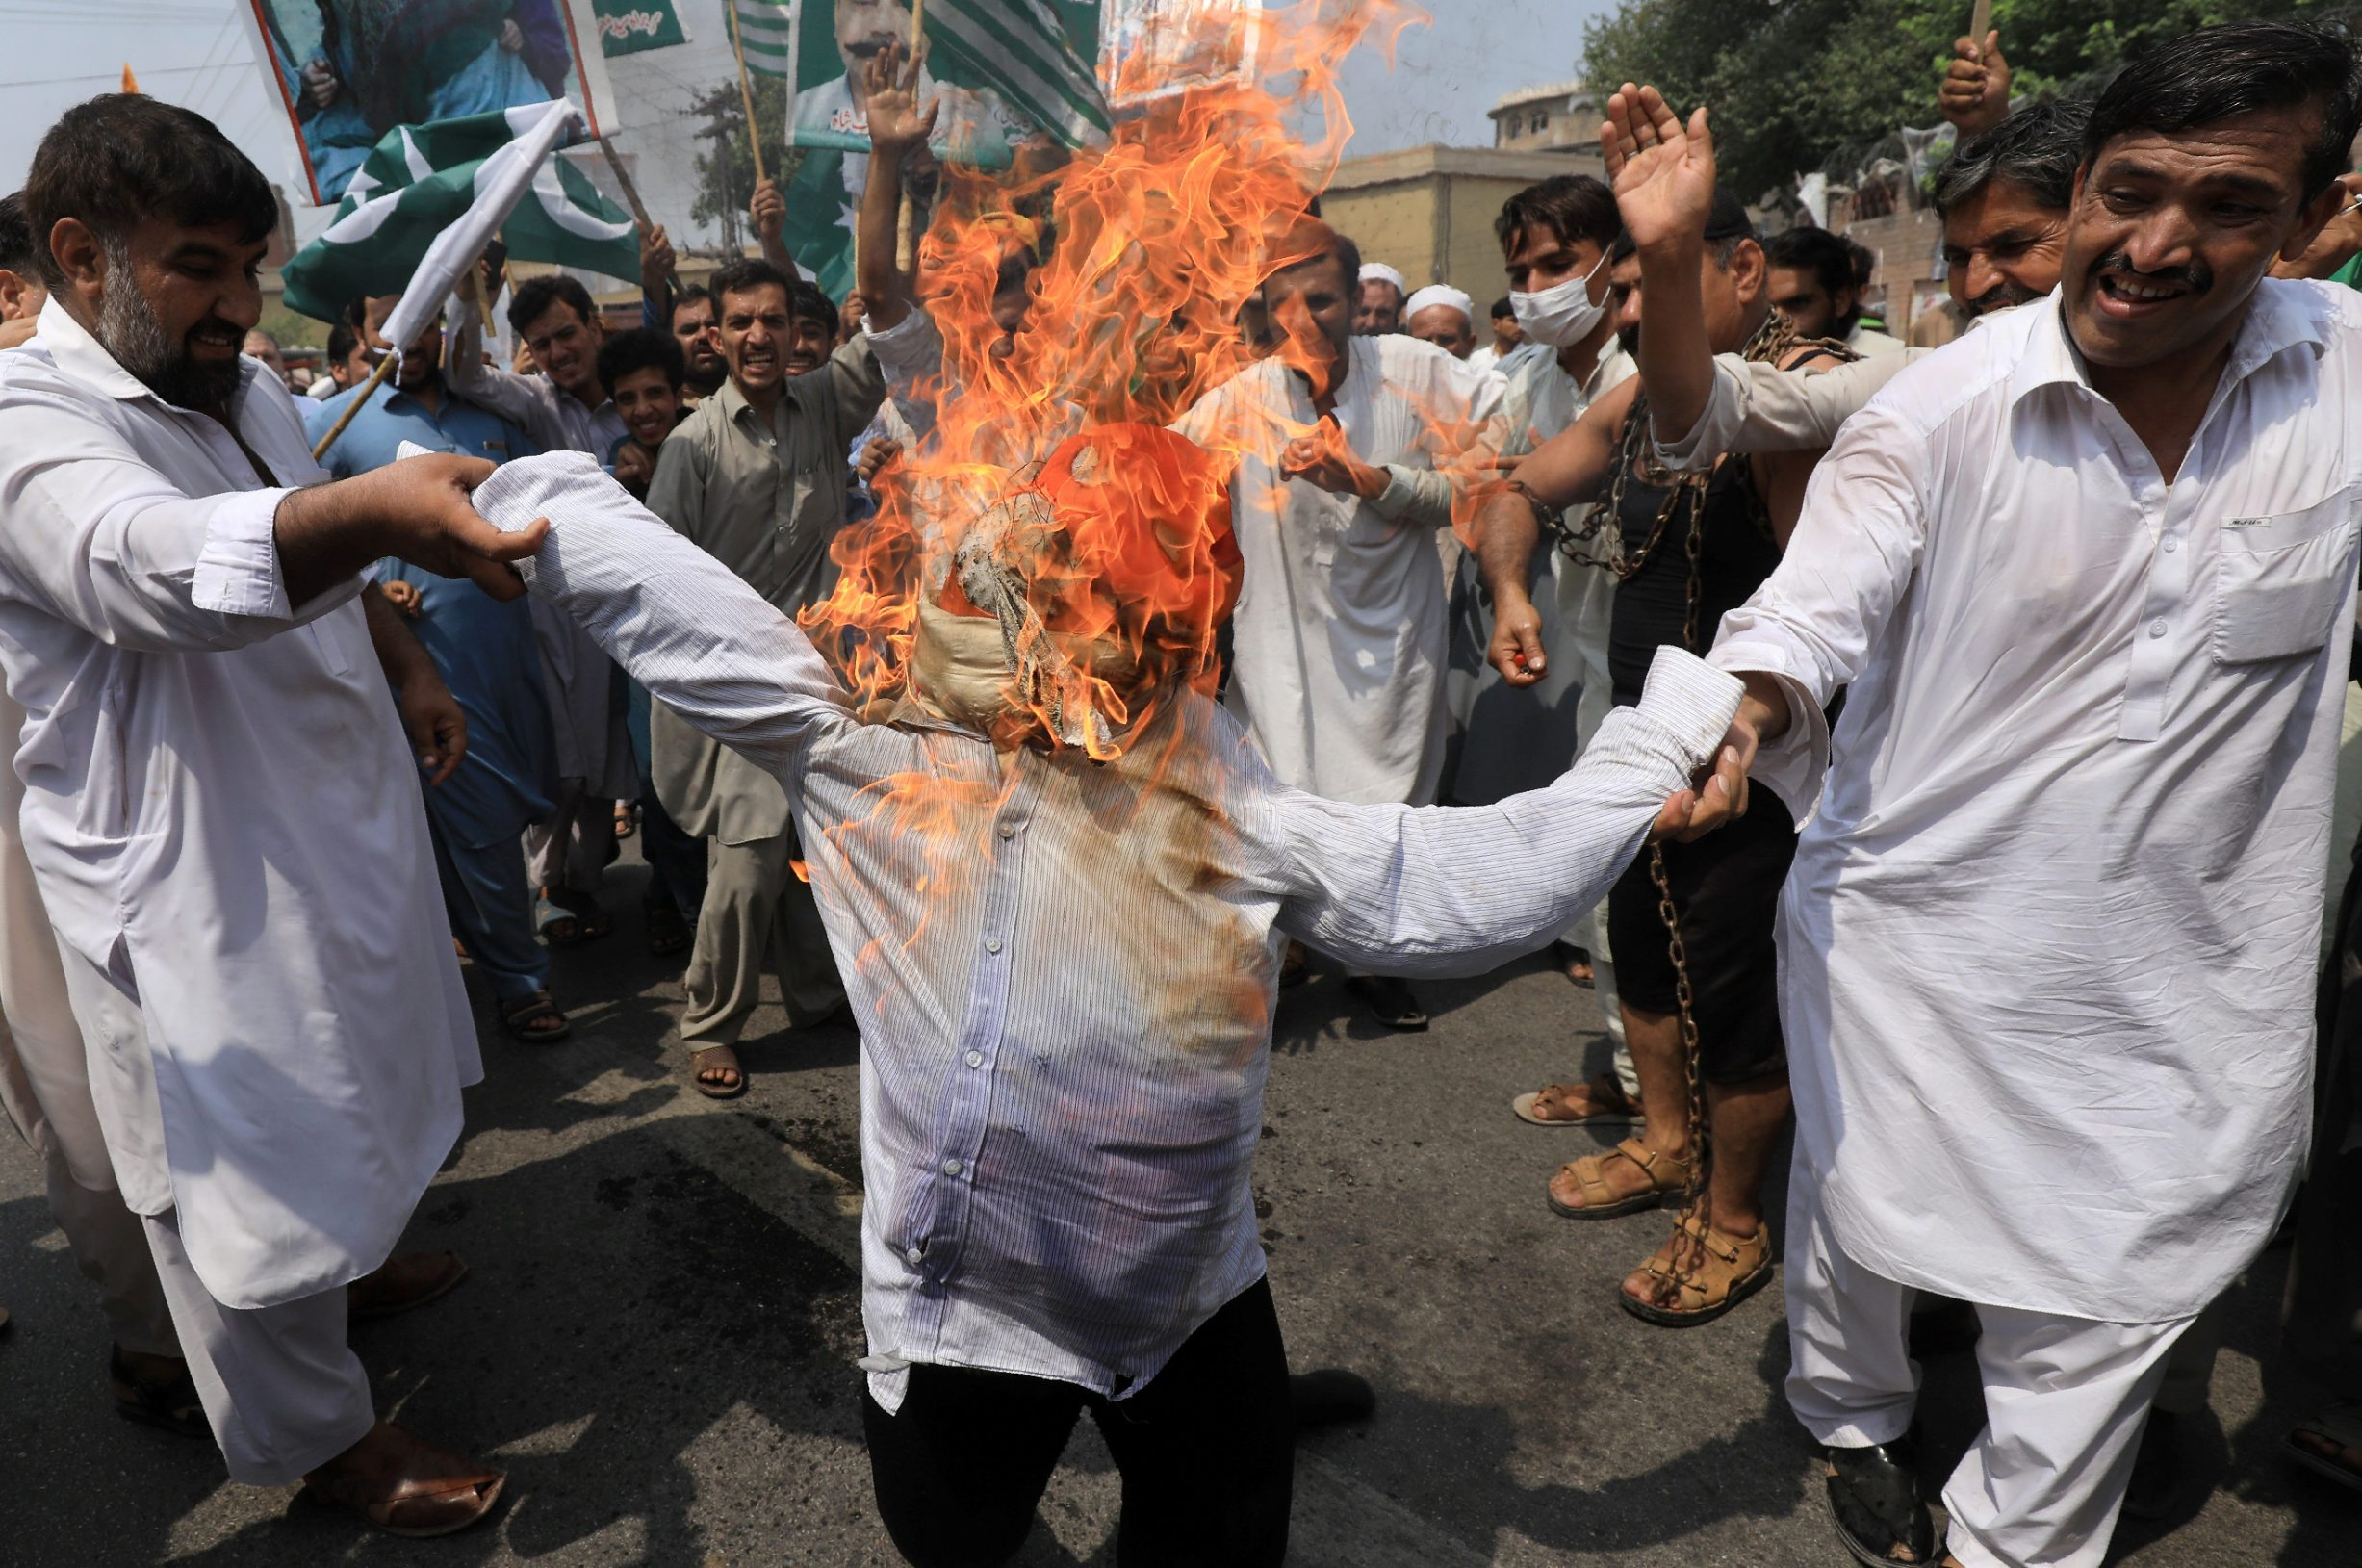 People set on fire an effigy of Indian Prime Minister Narendra Modi, during a countrywide 'Kashmir Hour' demonstration to express solidarity with the people of Kashmir, observing a call by Prime Minister Imran Khan in Peshawar, Pakistan August 30, 2019. REUTERS/Fayaz Aziz